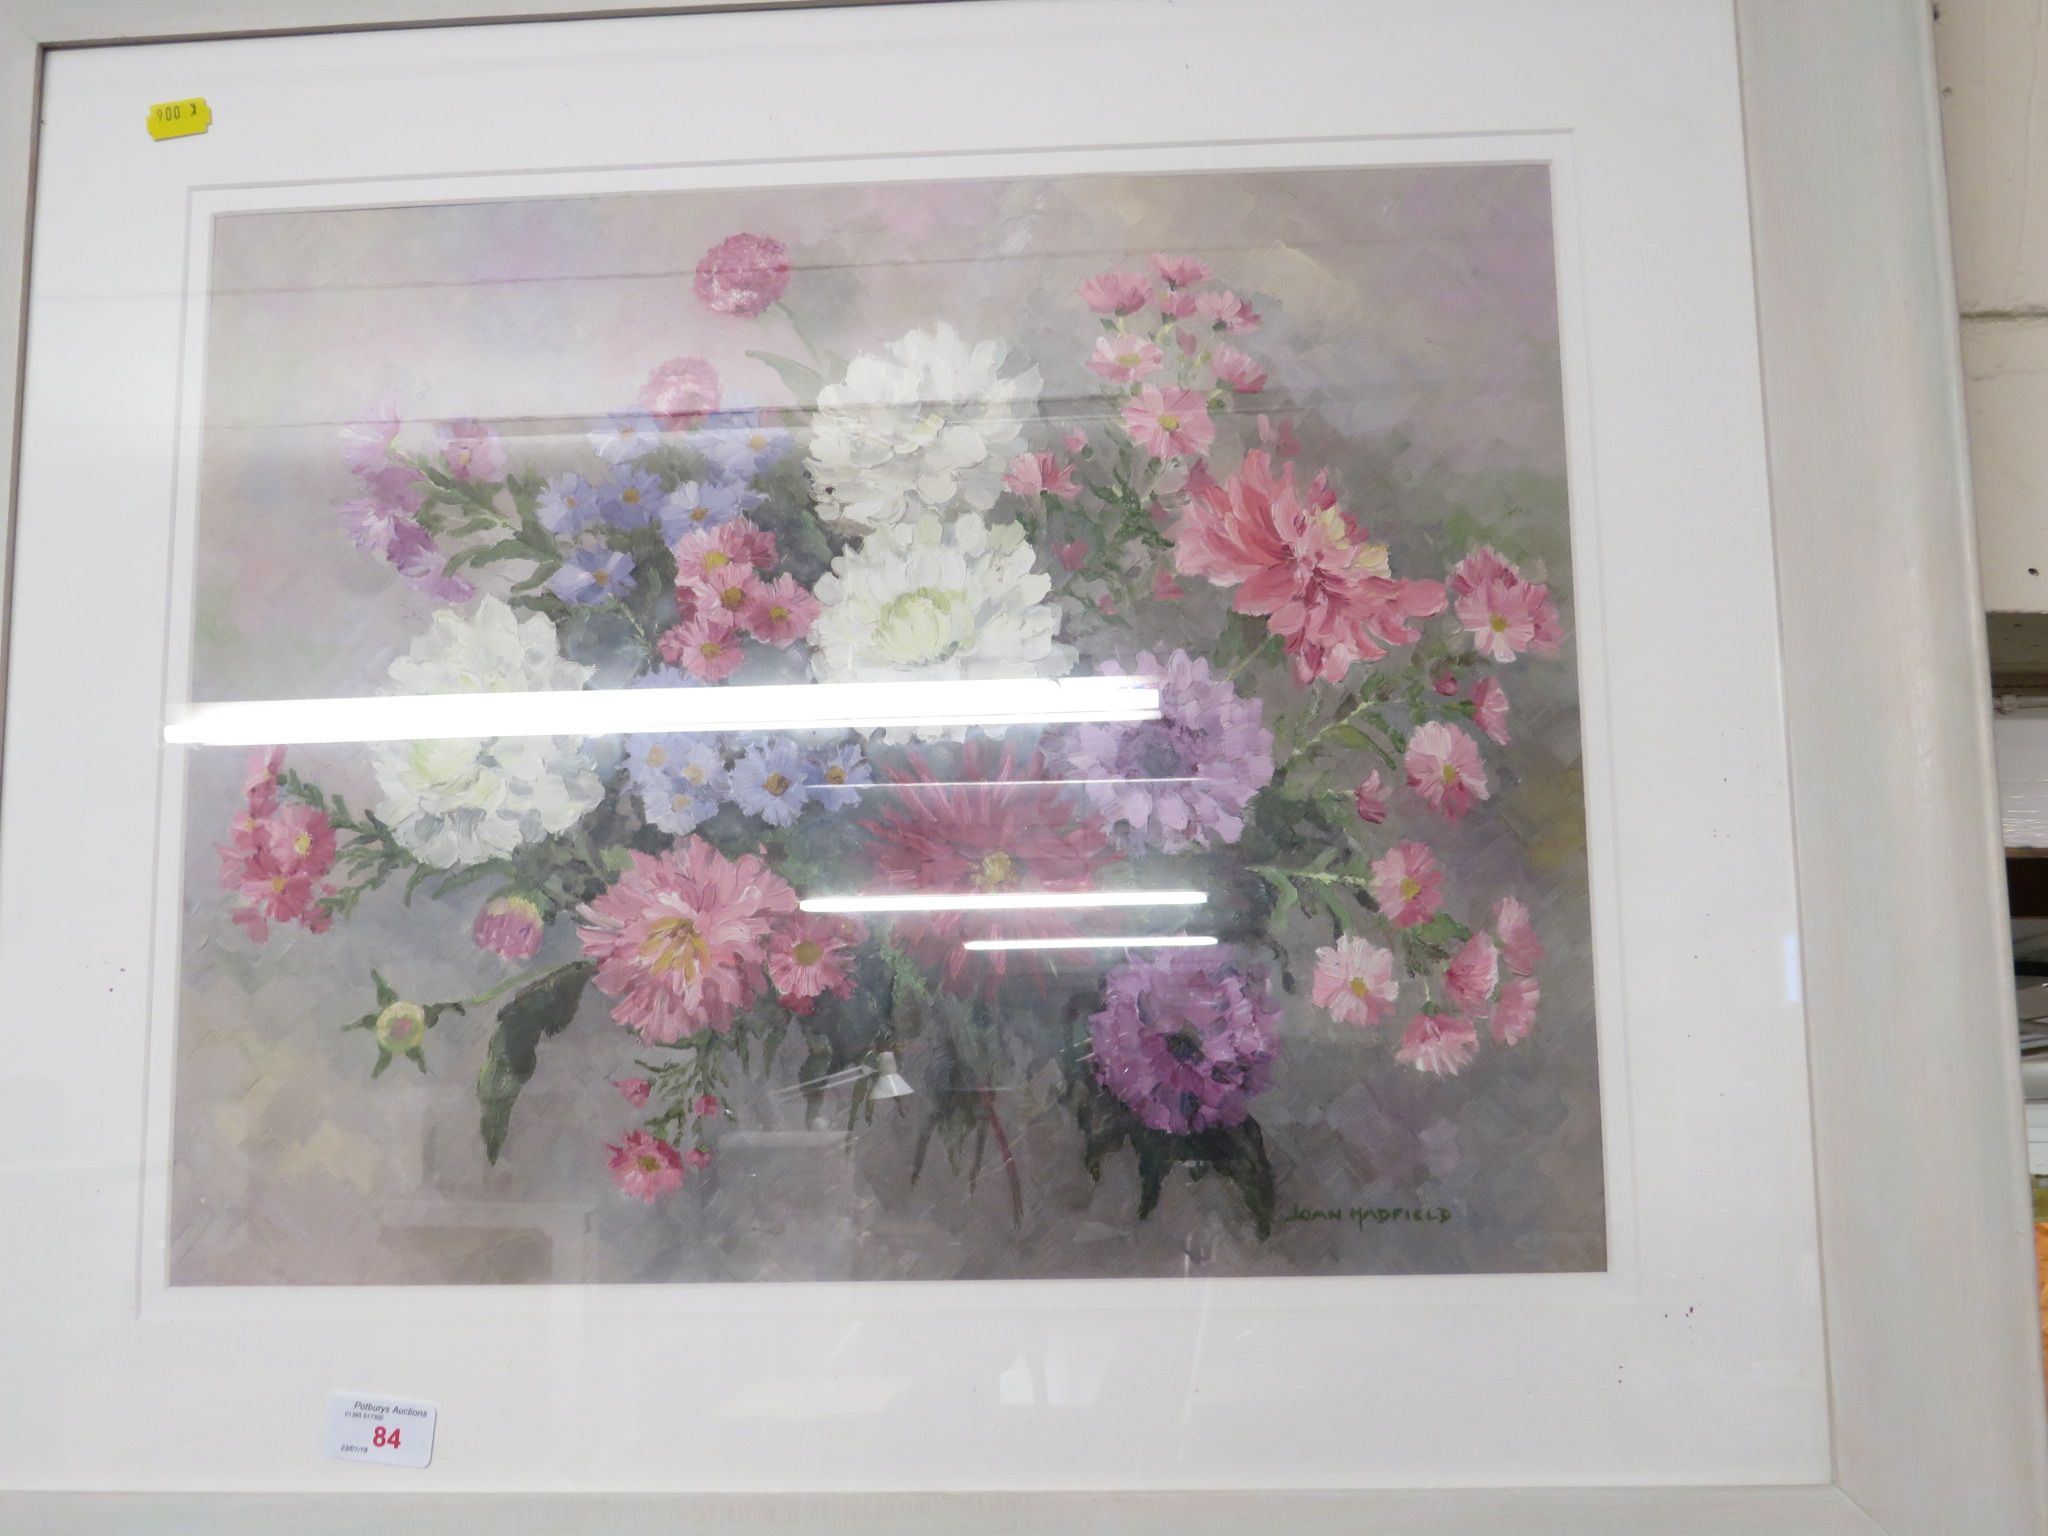 FRAMED AND GLAZED STILL LIFT PAINTING OF FLOWERS SIGNED LOWER RIGHT JOAN HADFIELD